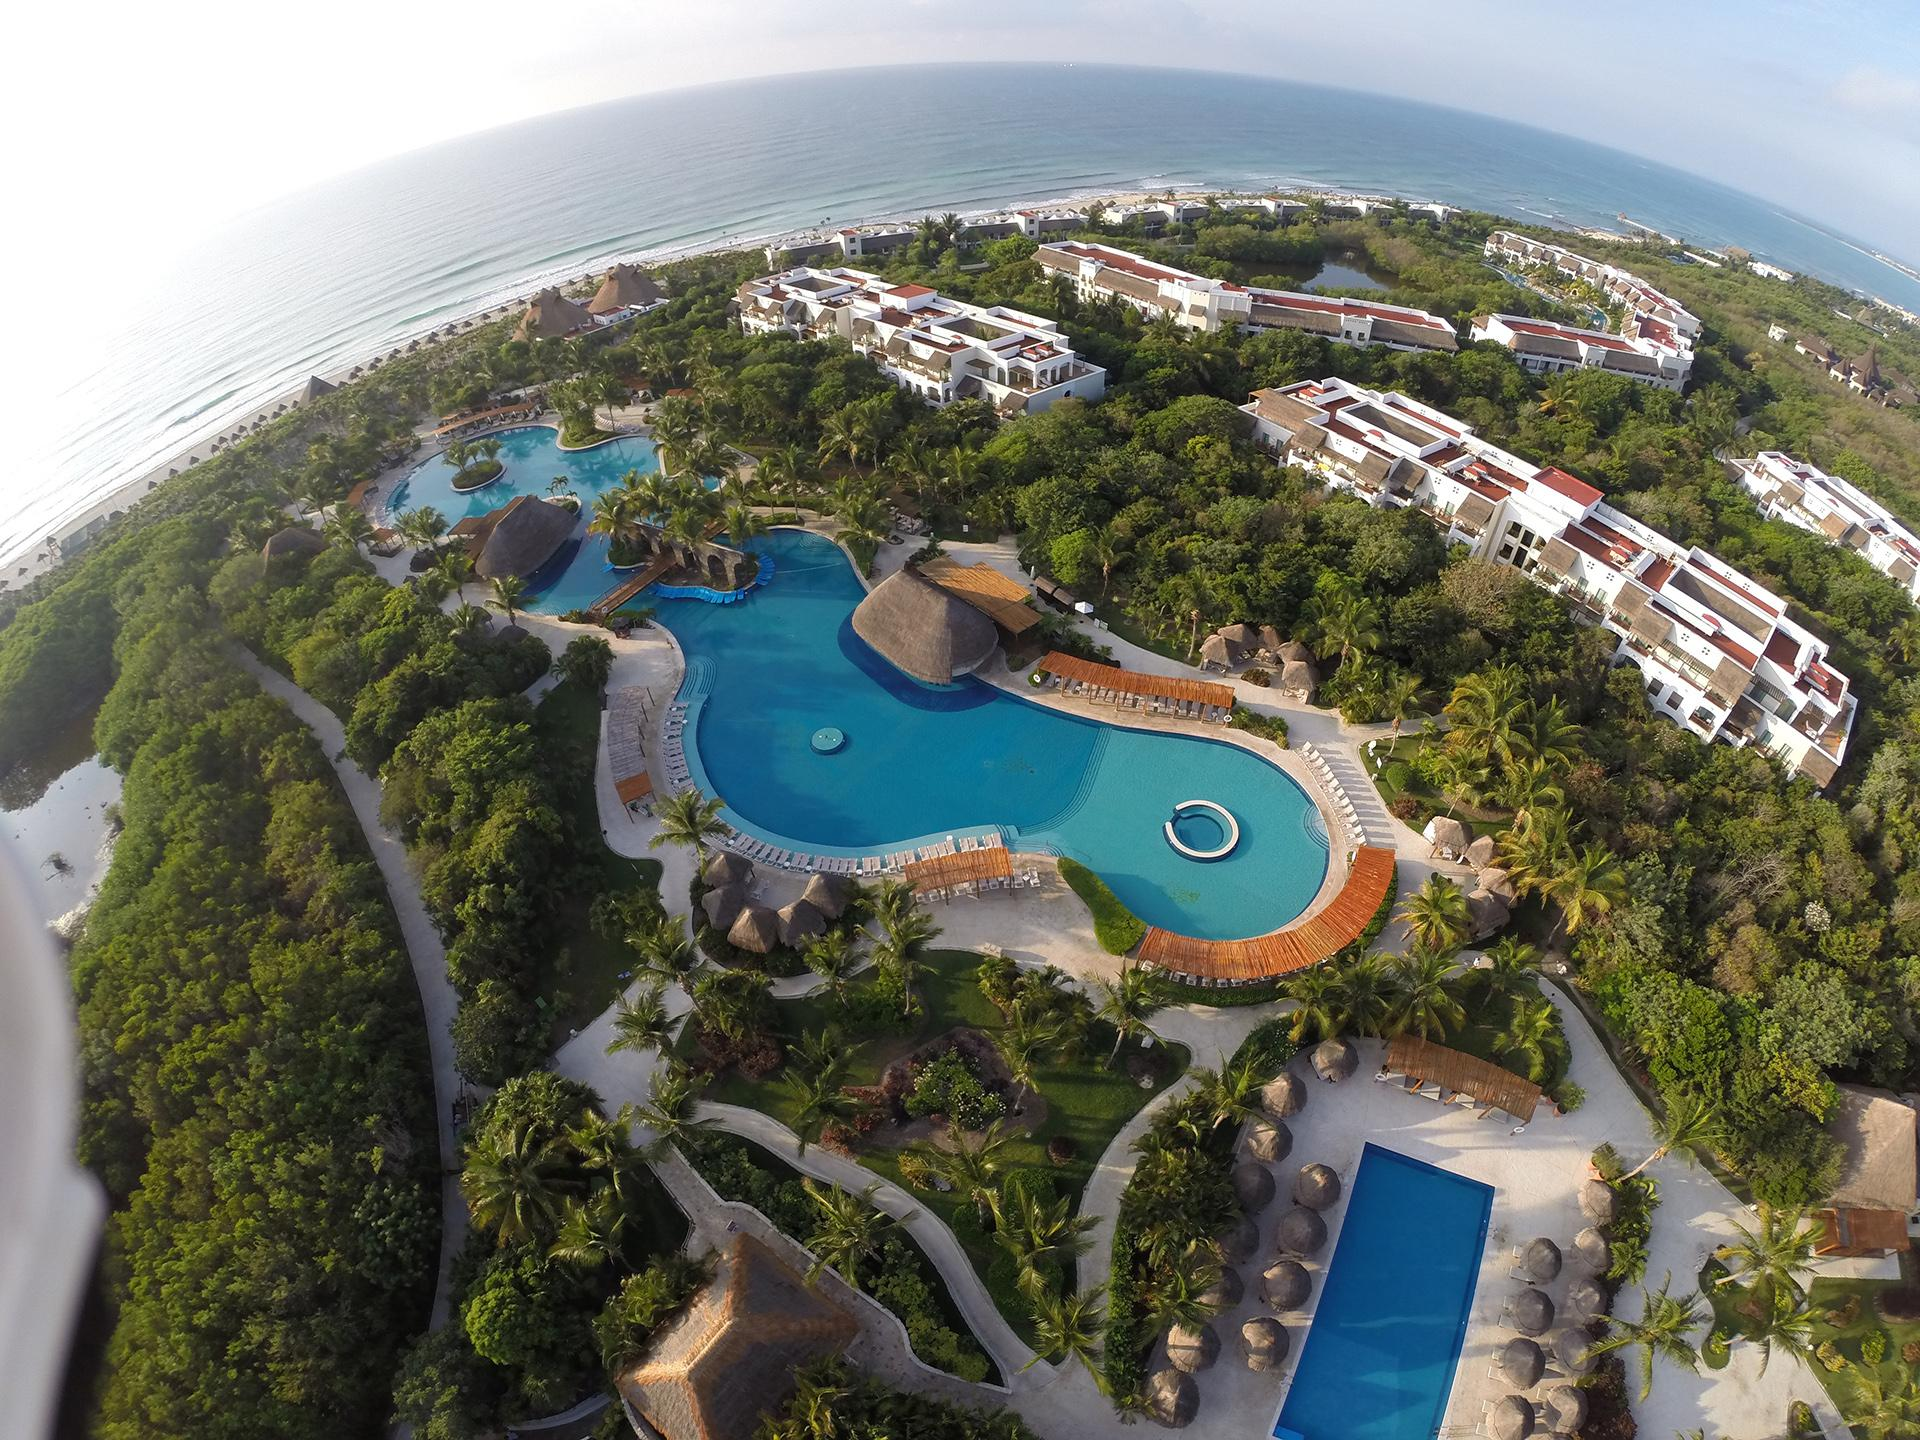 4 Ways to Find Luxurious Bliss at the Valentin Imperial, Riviera Maya